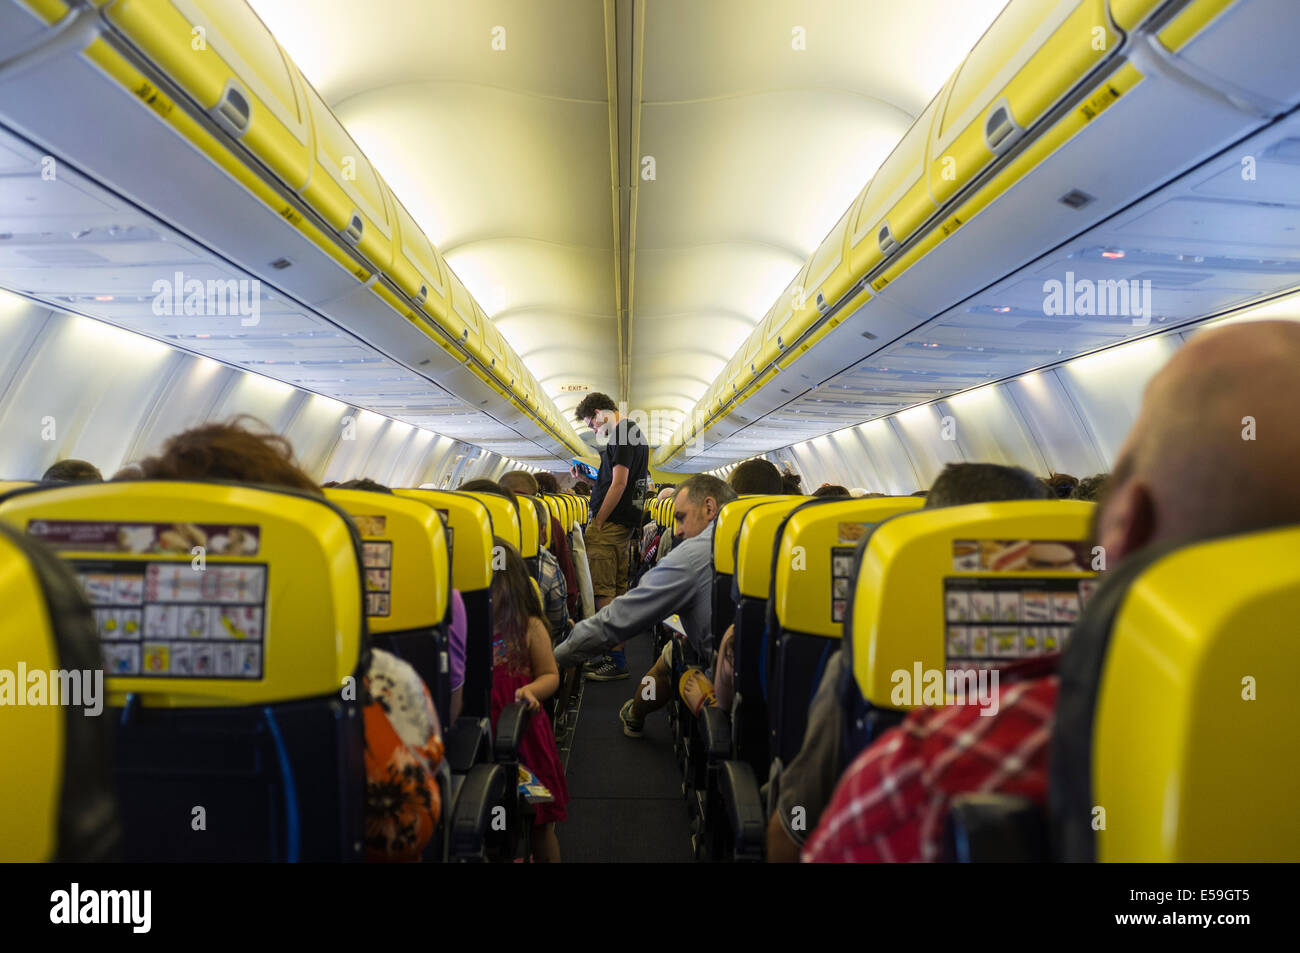 Ryanair Boeing 737 800 Cabin Interior Stock Photo Royalty